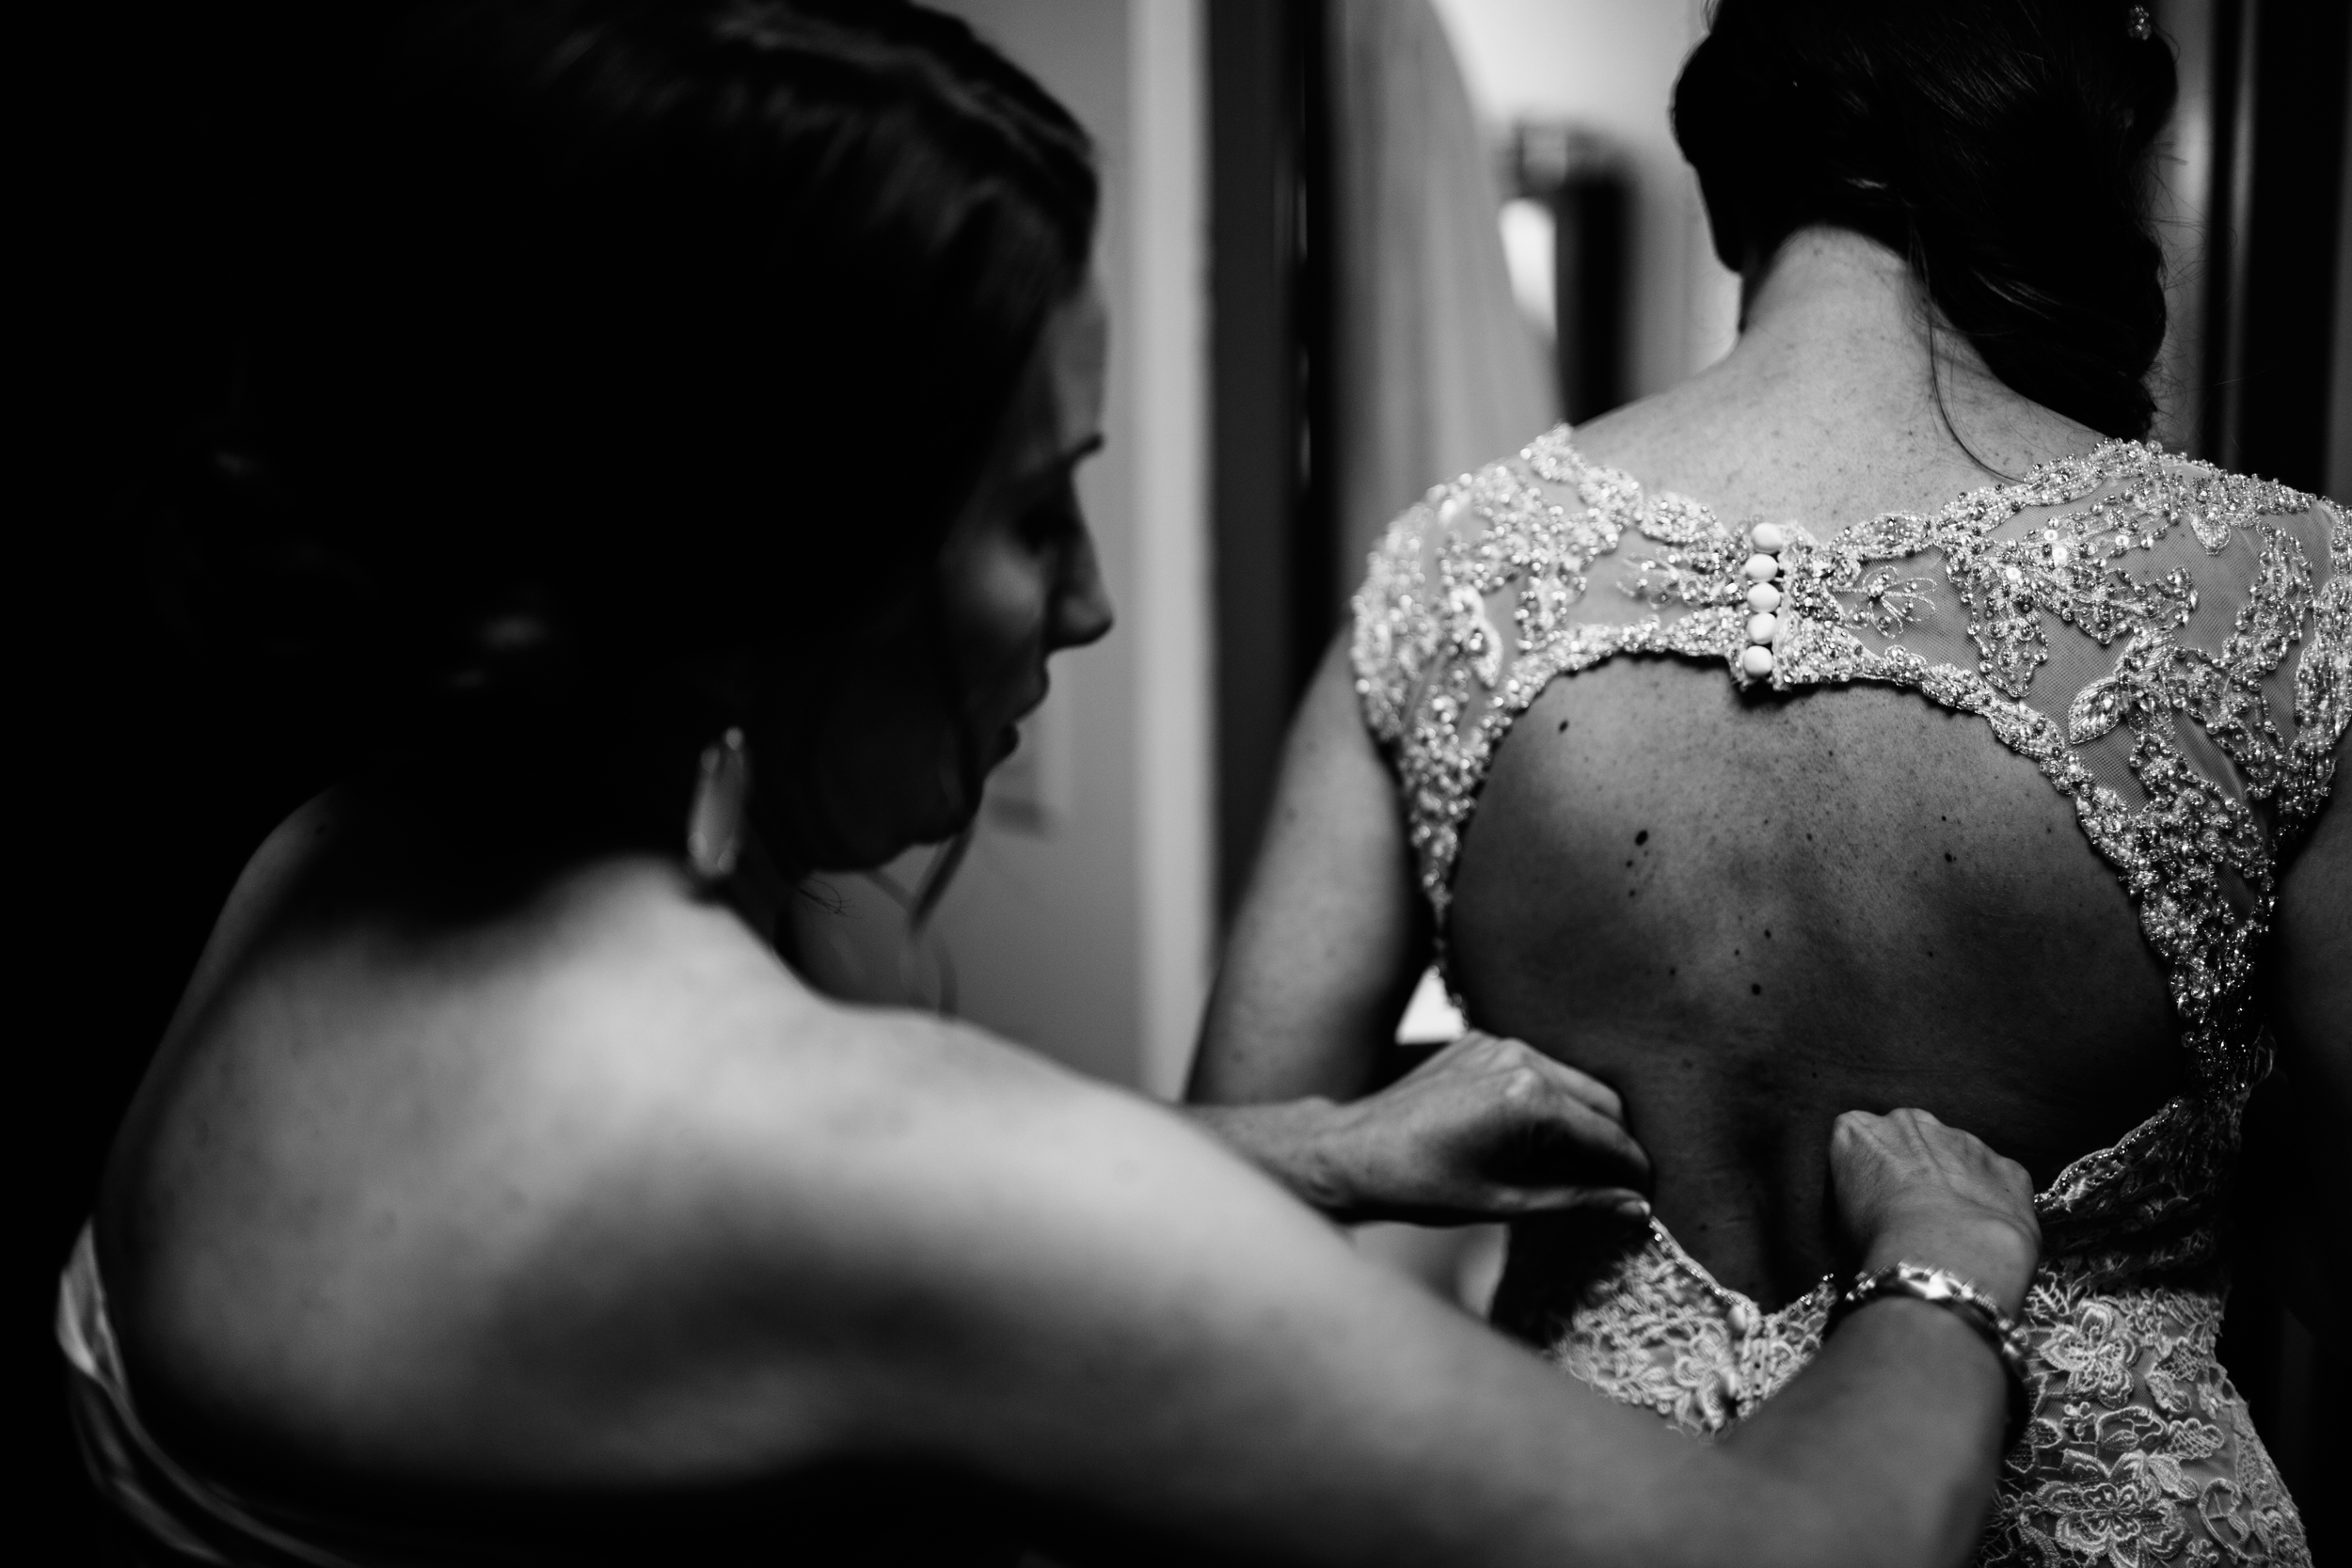 KELLIandBRADweddingJUNE2015 - gettingready (41 of 66).jpg